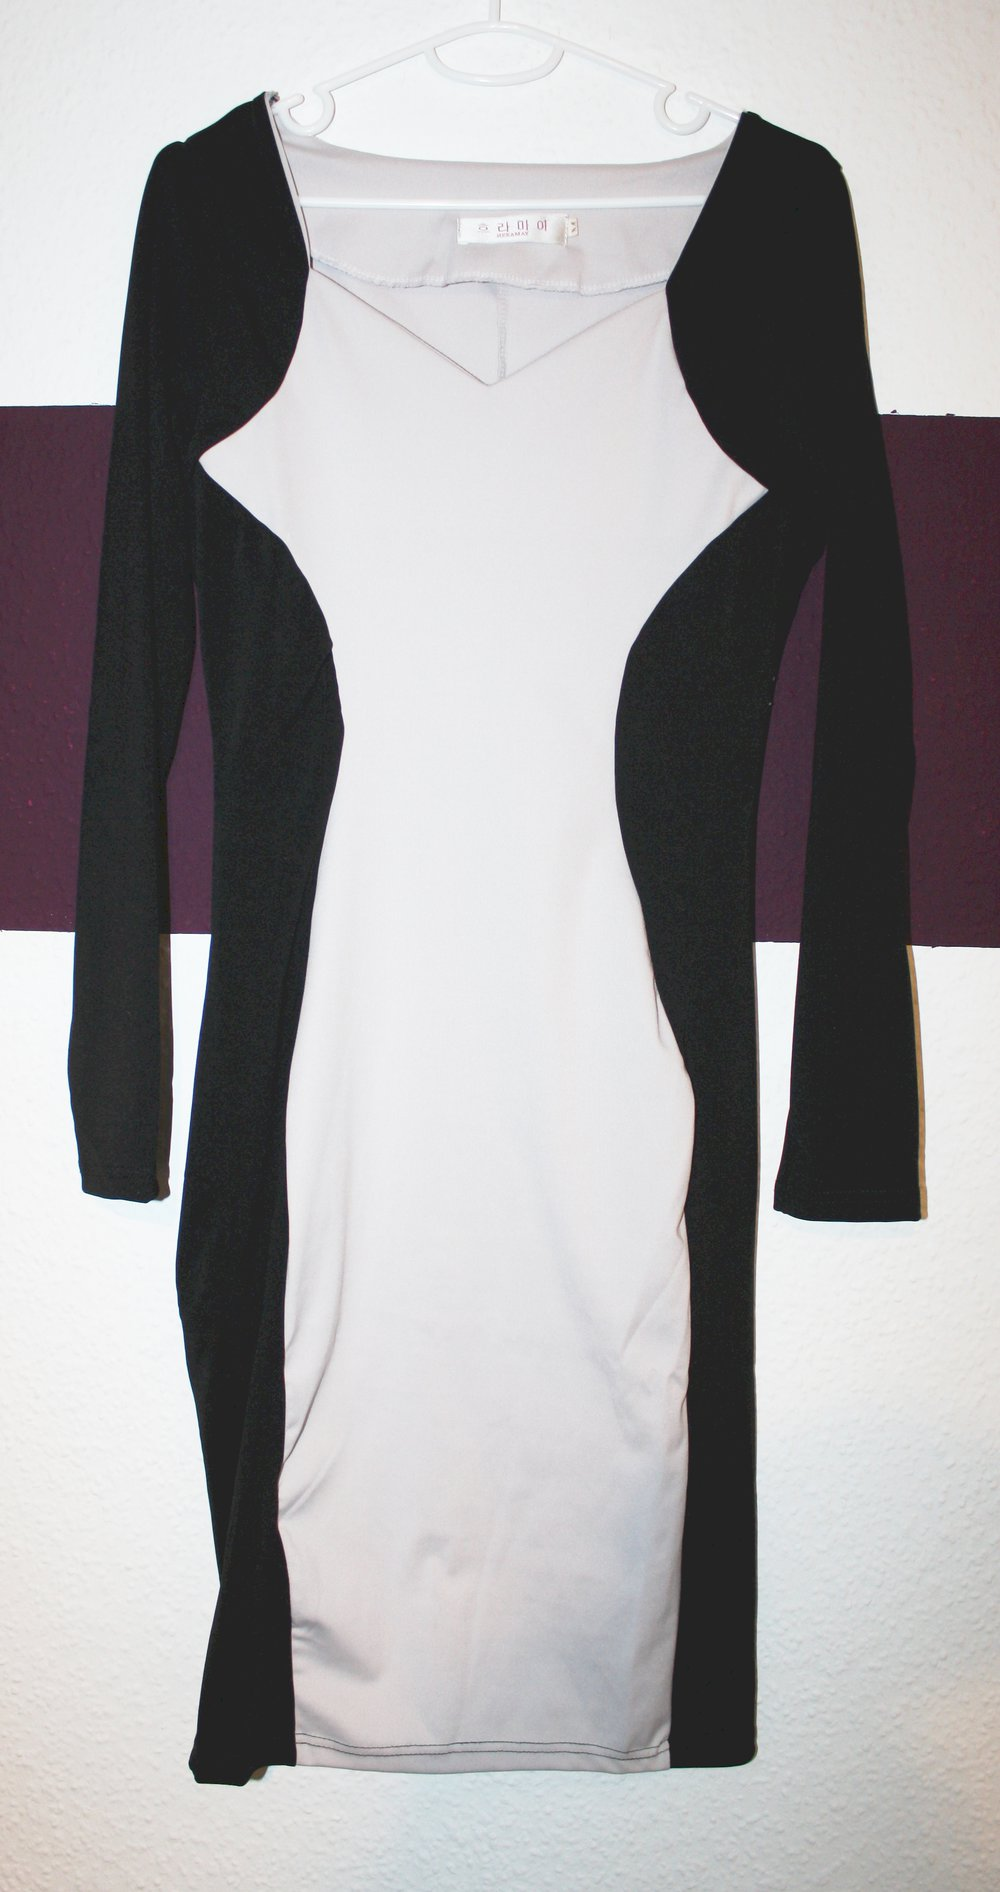 bodycon kleid, stretch, stretchig, figurbetont, enganliegend, knielang,  robust, formend, silhouette, wespentaille, langarm, langärmlig, black &  white,